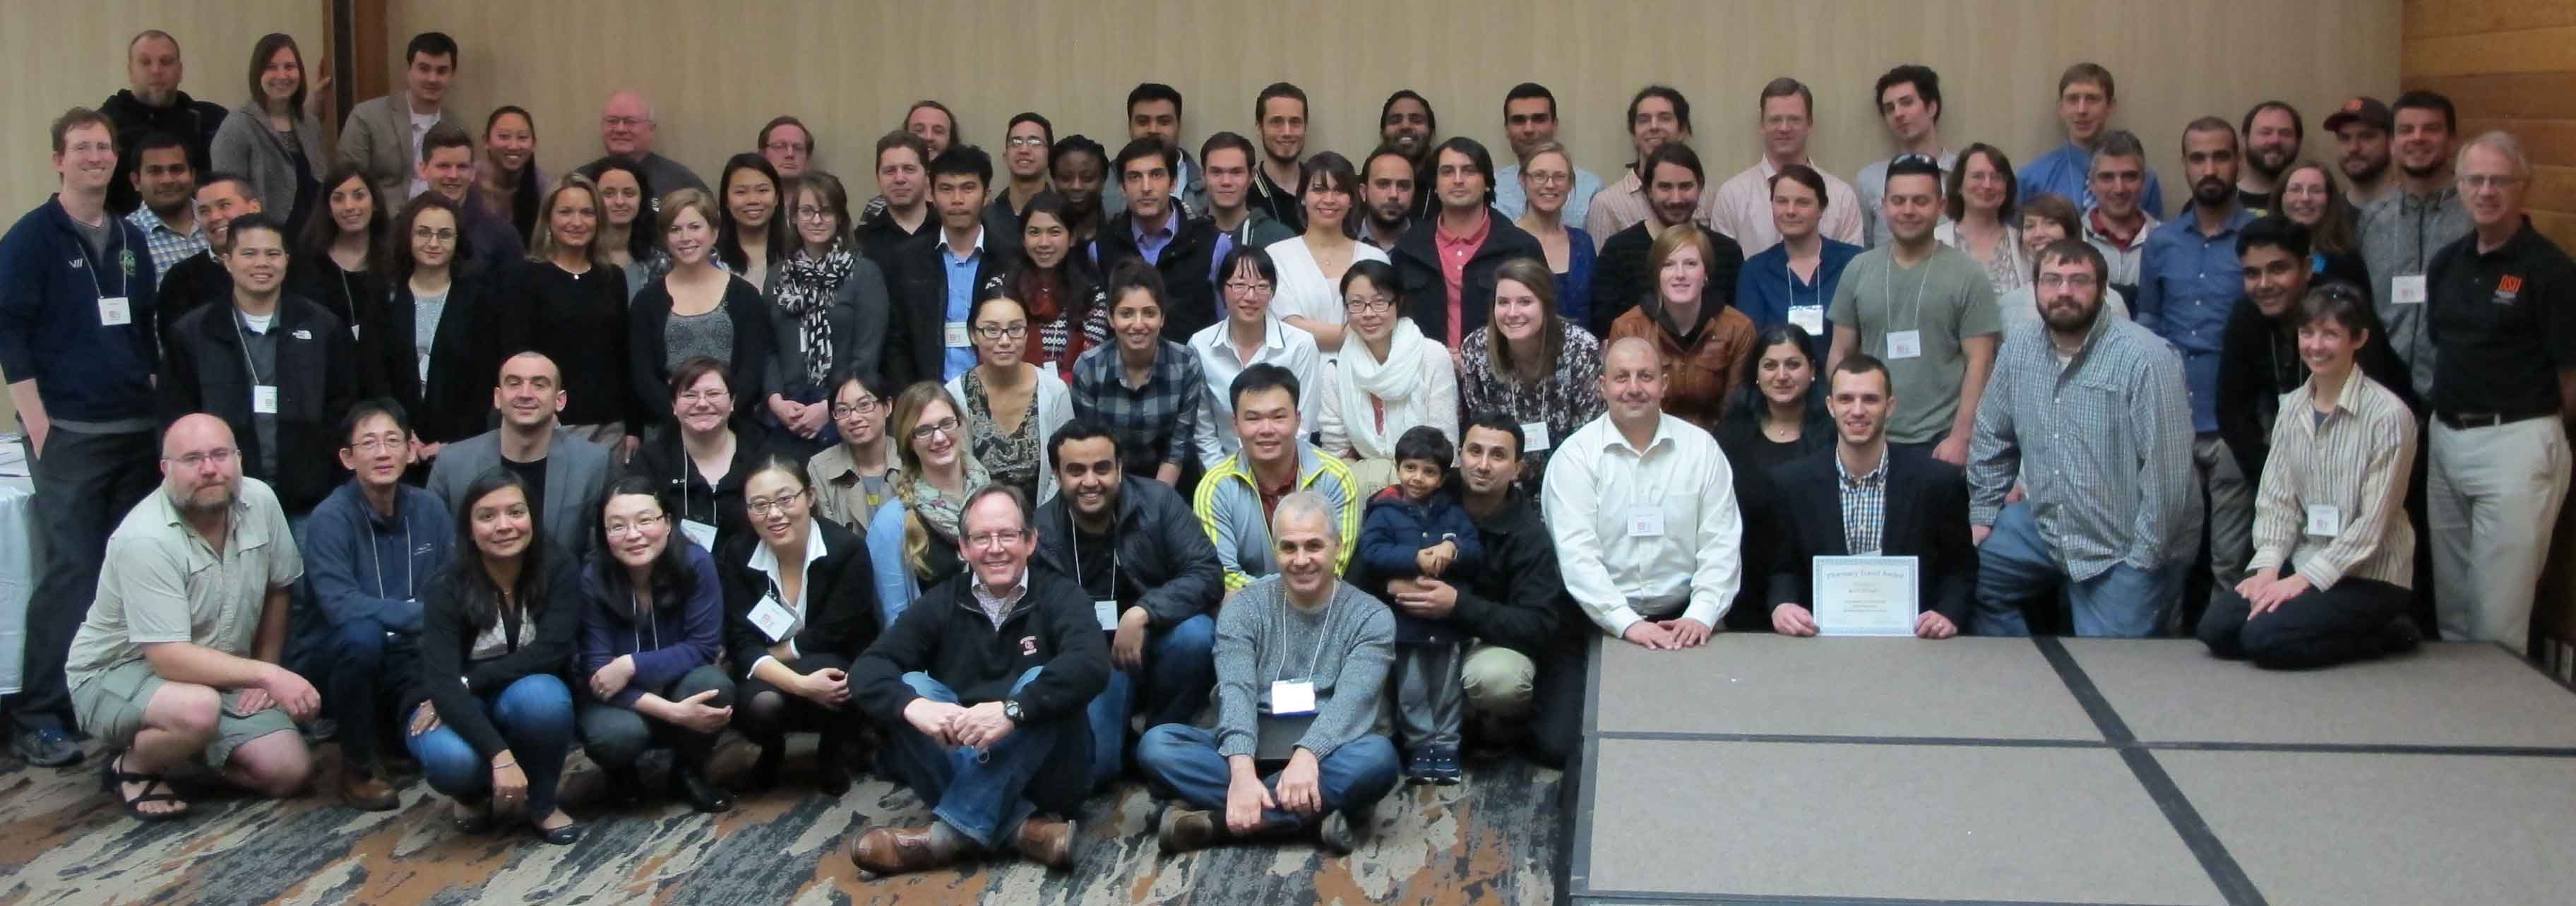 Graduate students, staff and faculty at the annual Rising research retreat on the Oregon coast